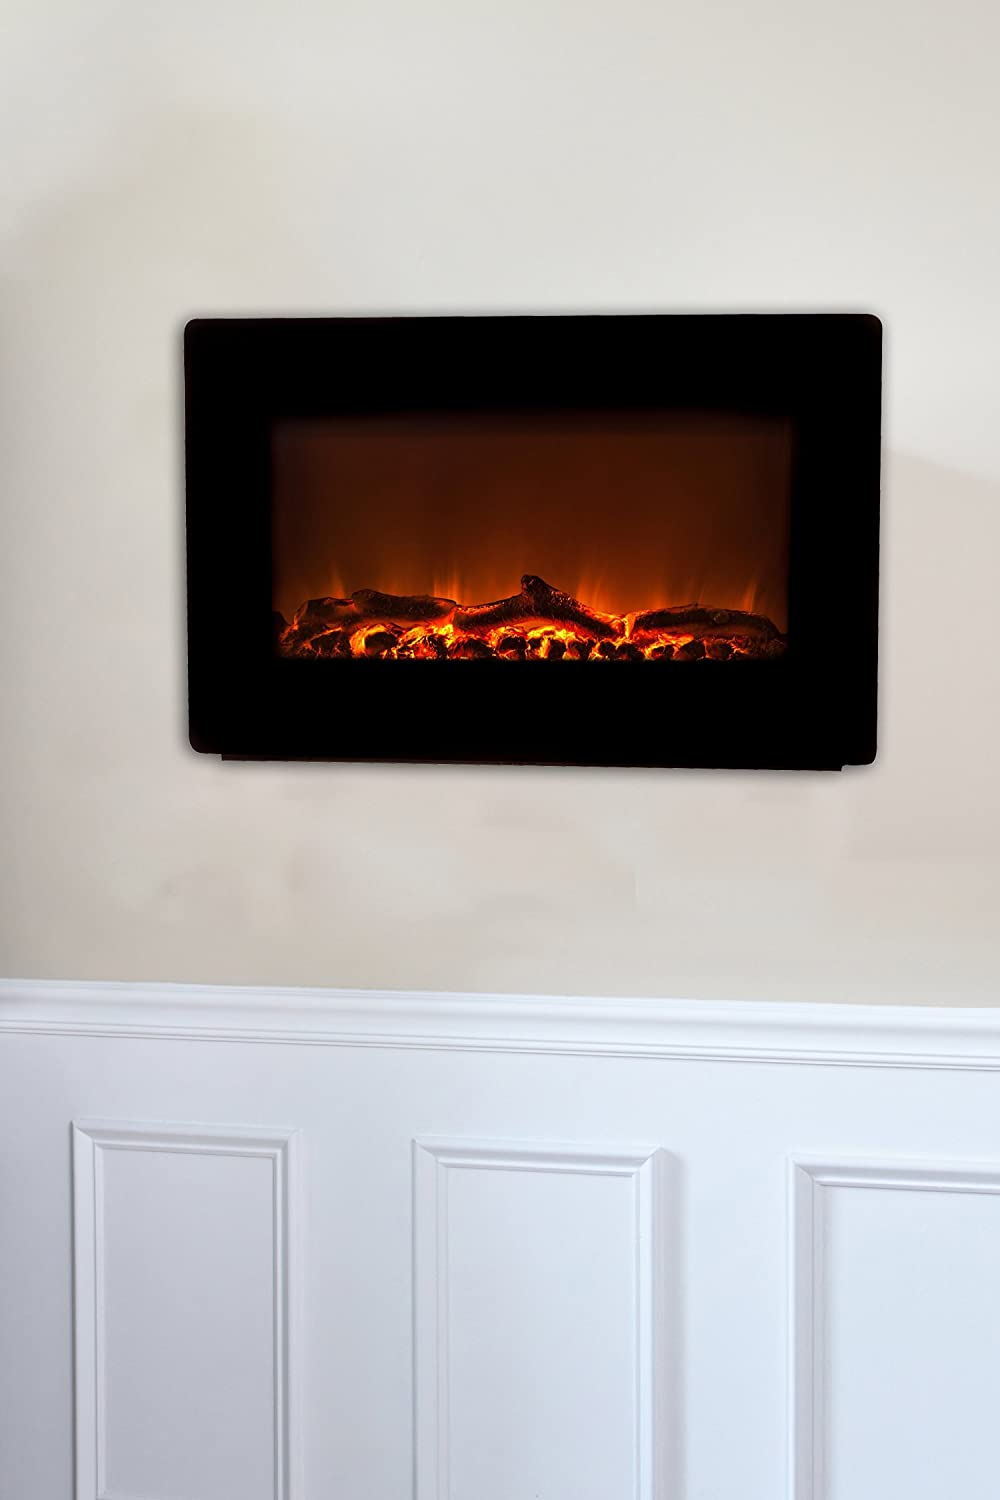 prism product dimplex electric series mounted wall mount fireplace